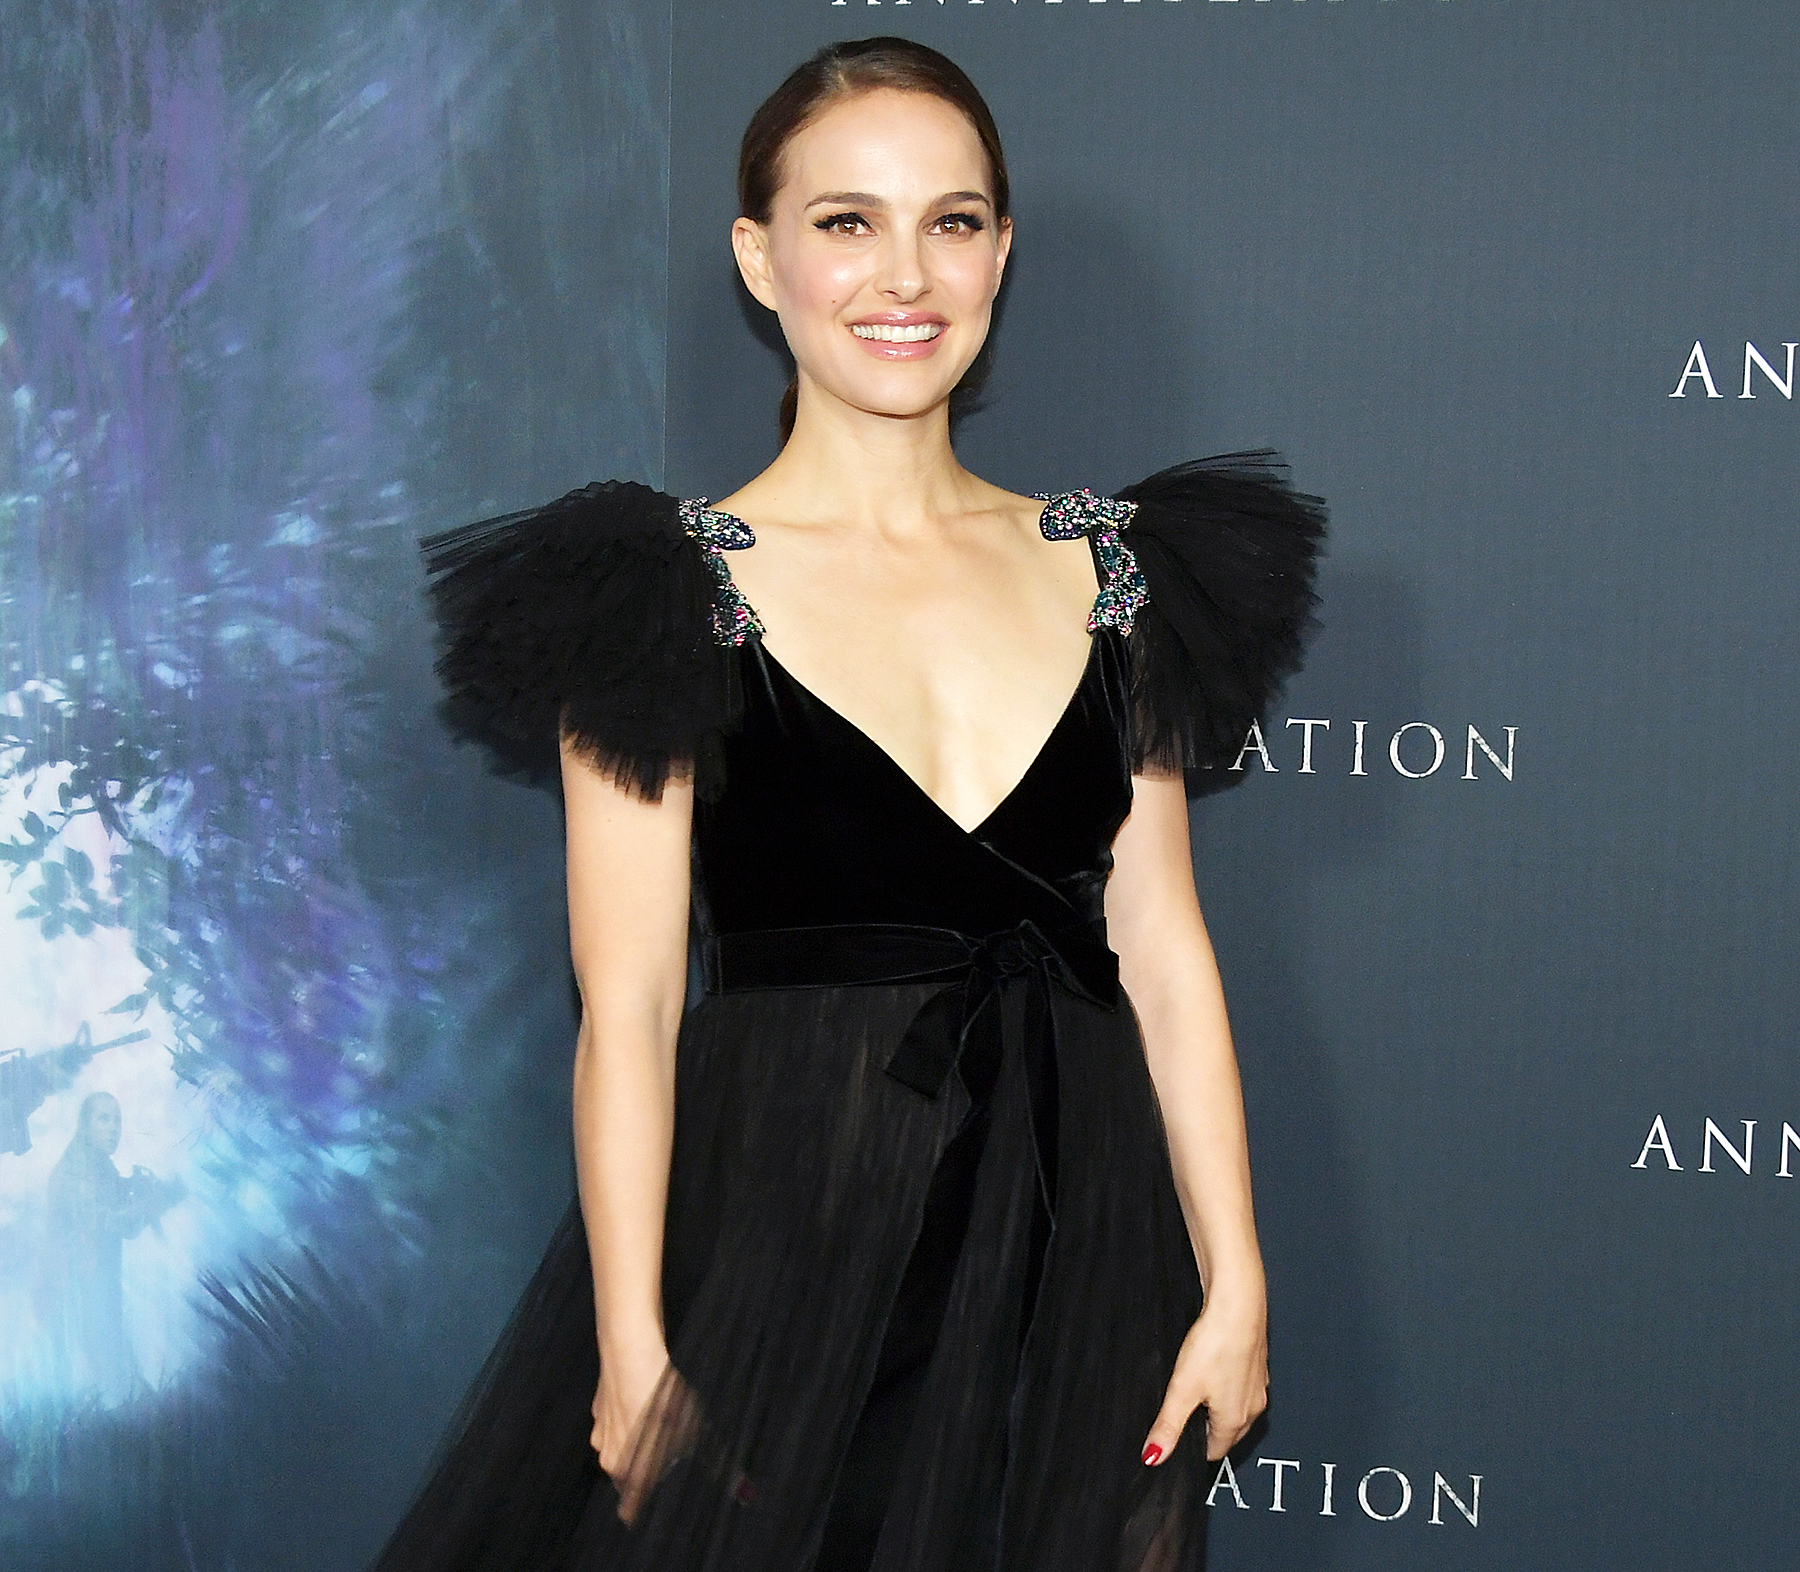 Natalie Portman 'very much regrets' signing petition in support of Roman Polanski